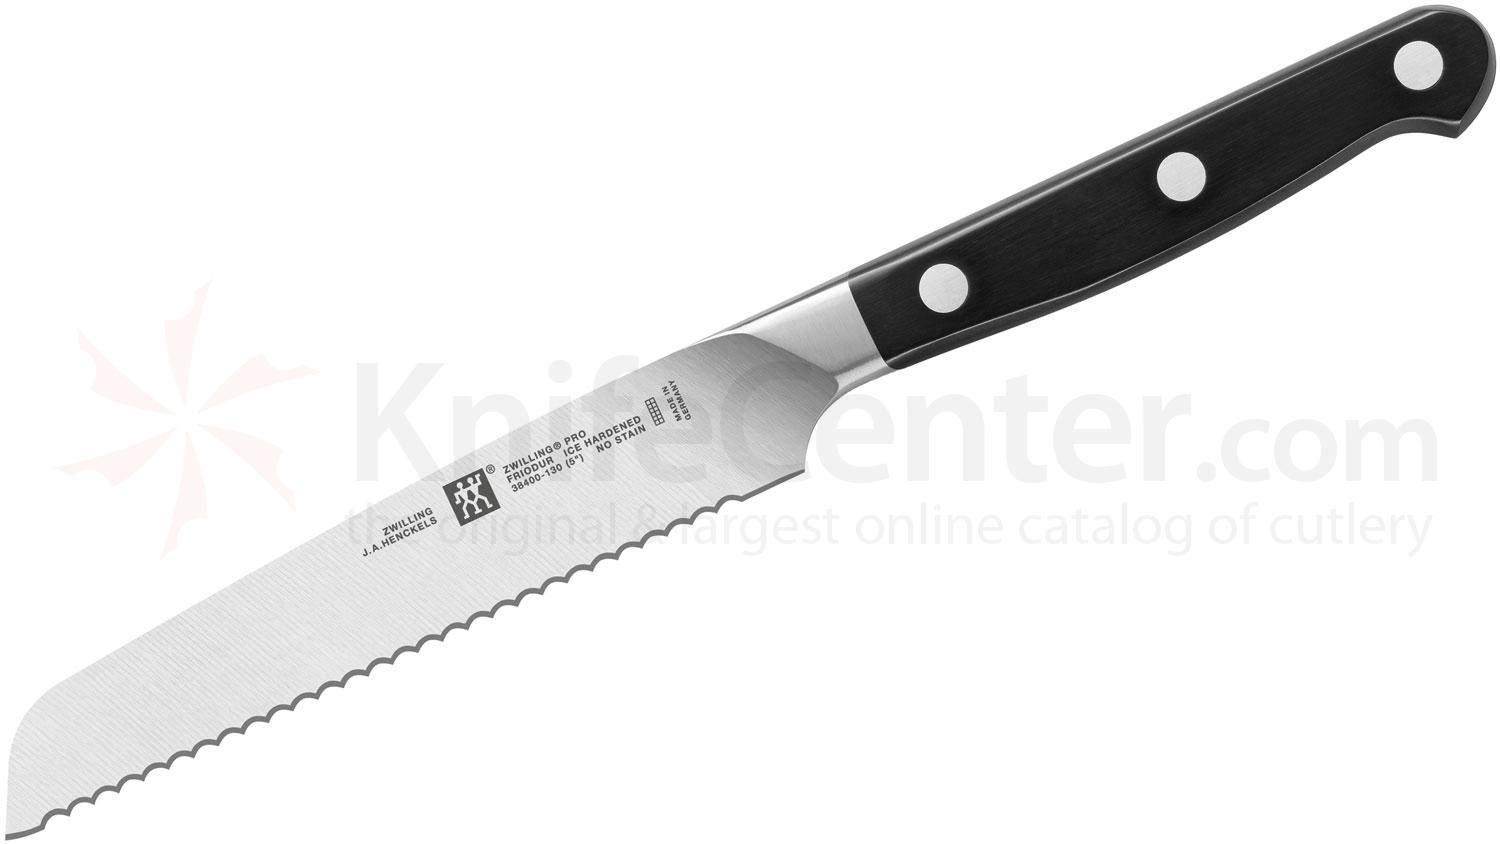 Zwilling J.A. Henckels Pro 5 inch Serrated Utility Knife